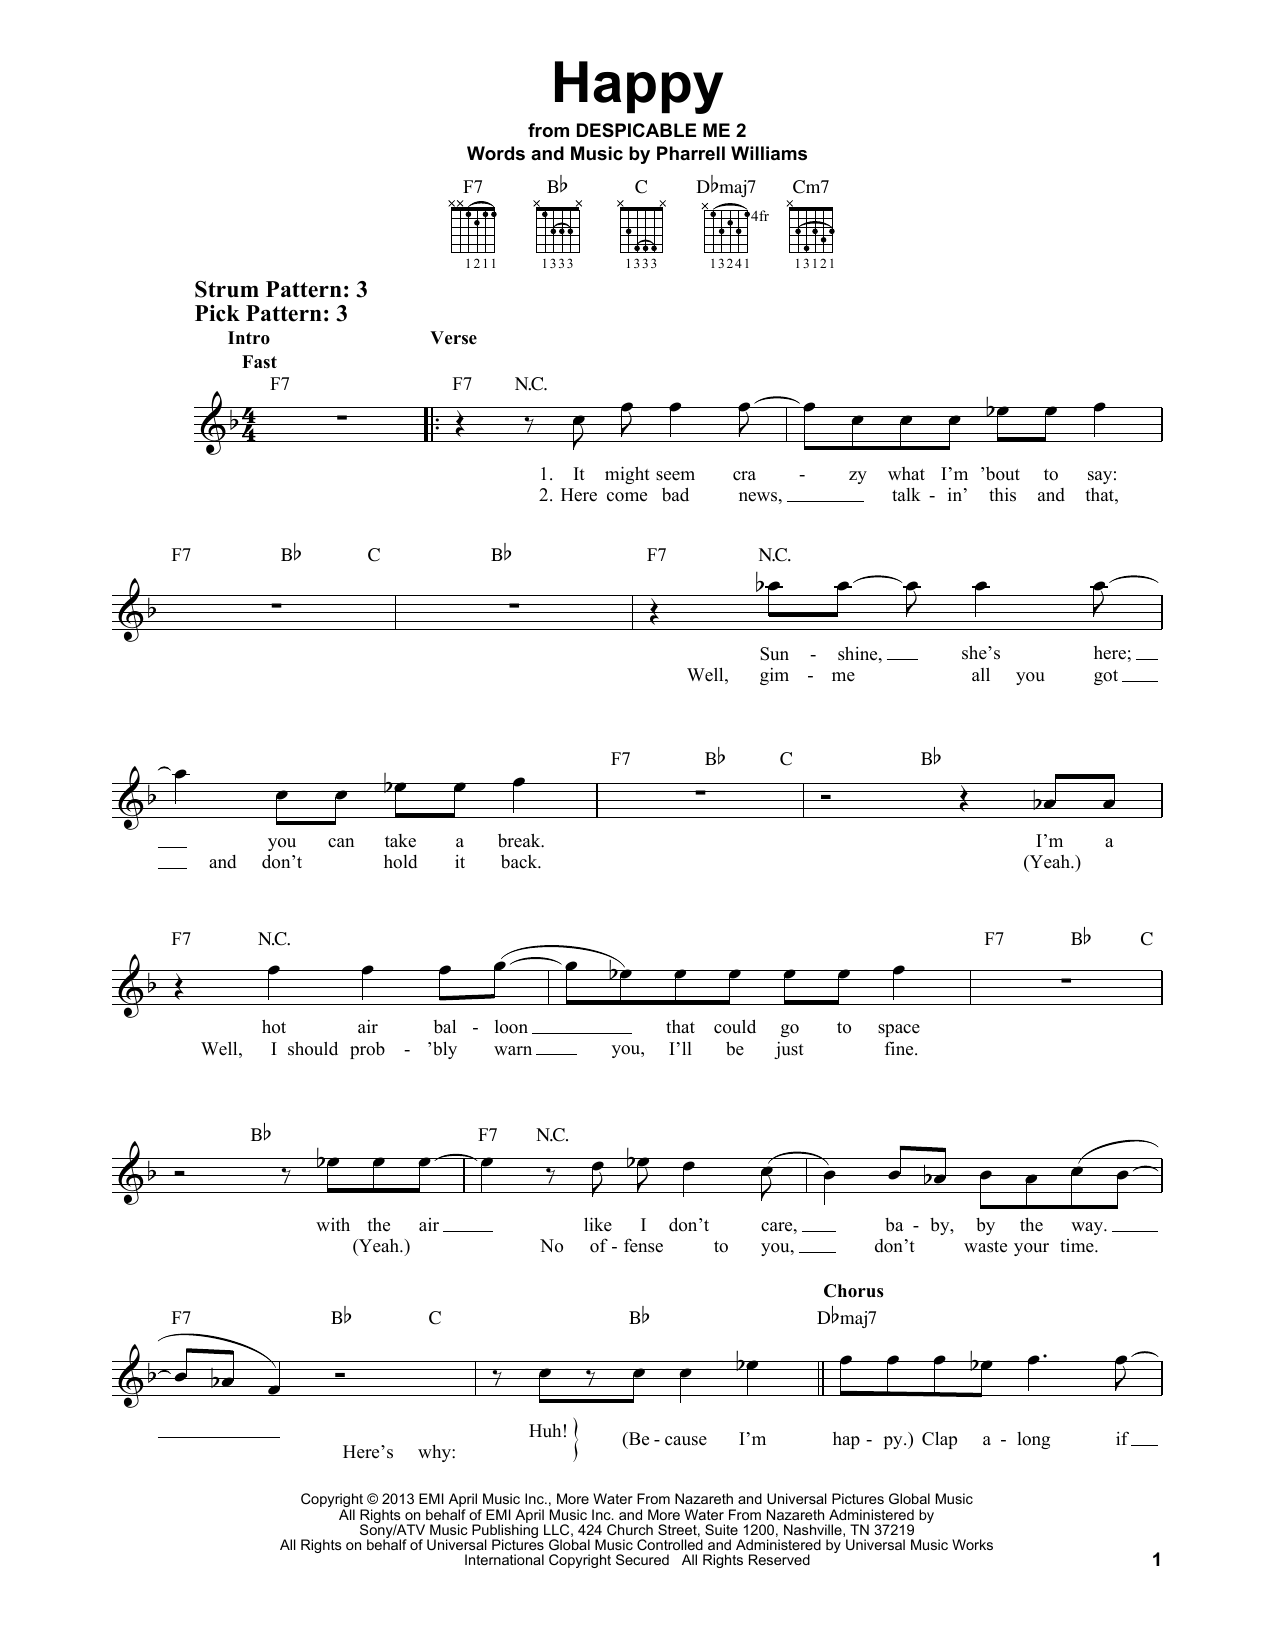 Download Pharrell Williams 'Happy' Digital Sheet Music Notes & Chords and start playing in minutes